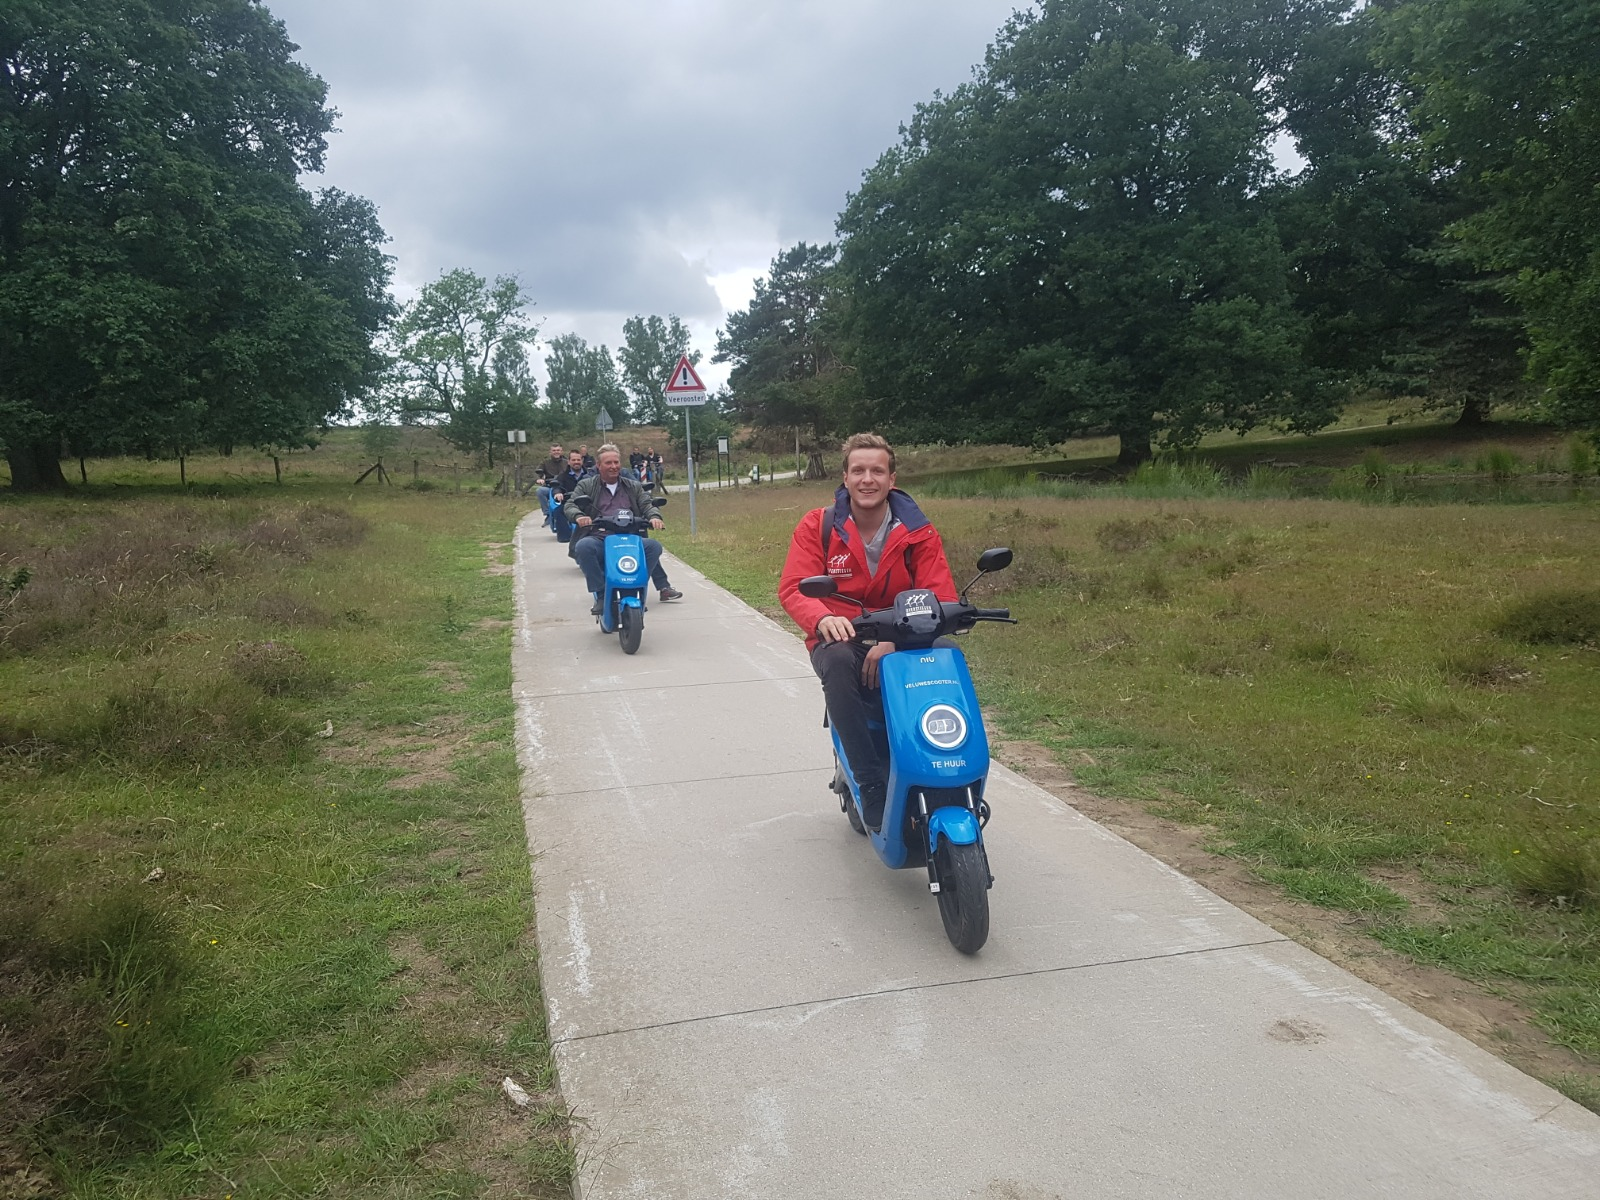 Scooter gids tour